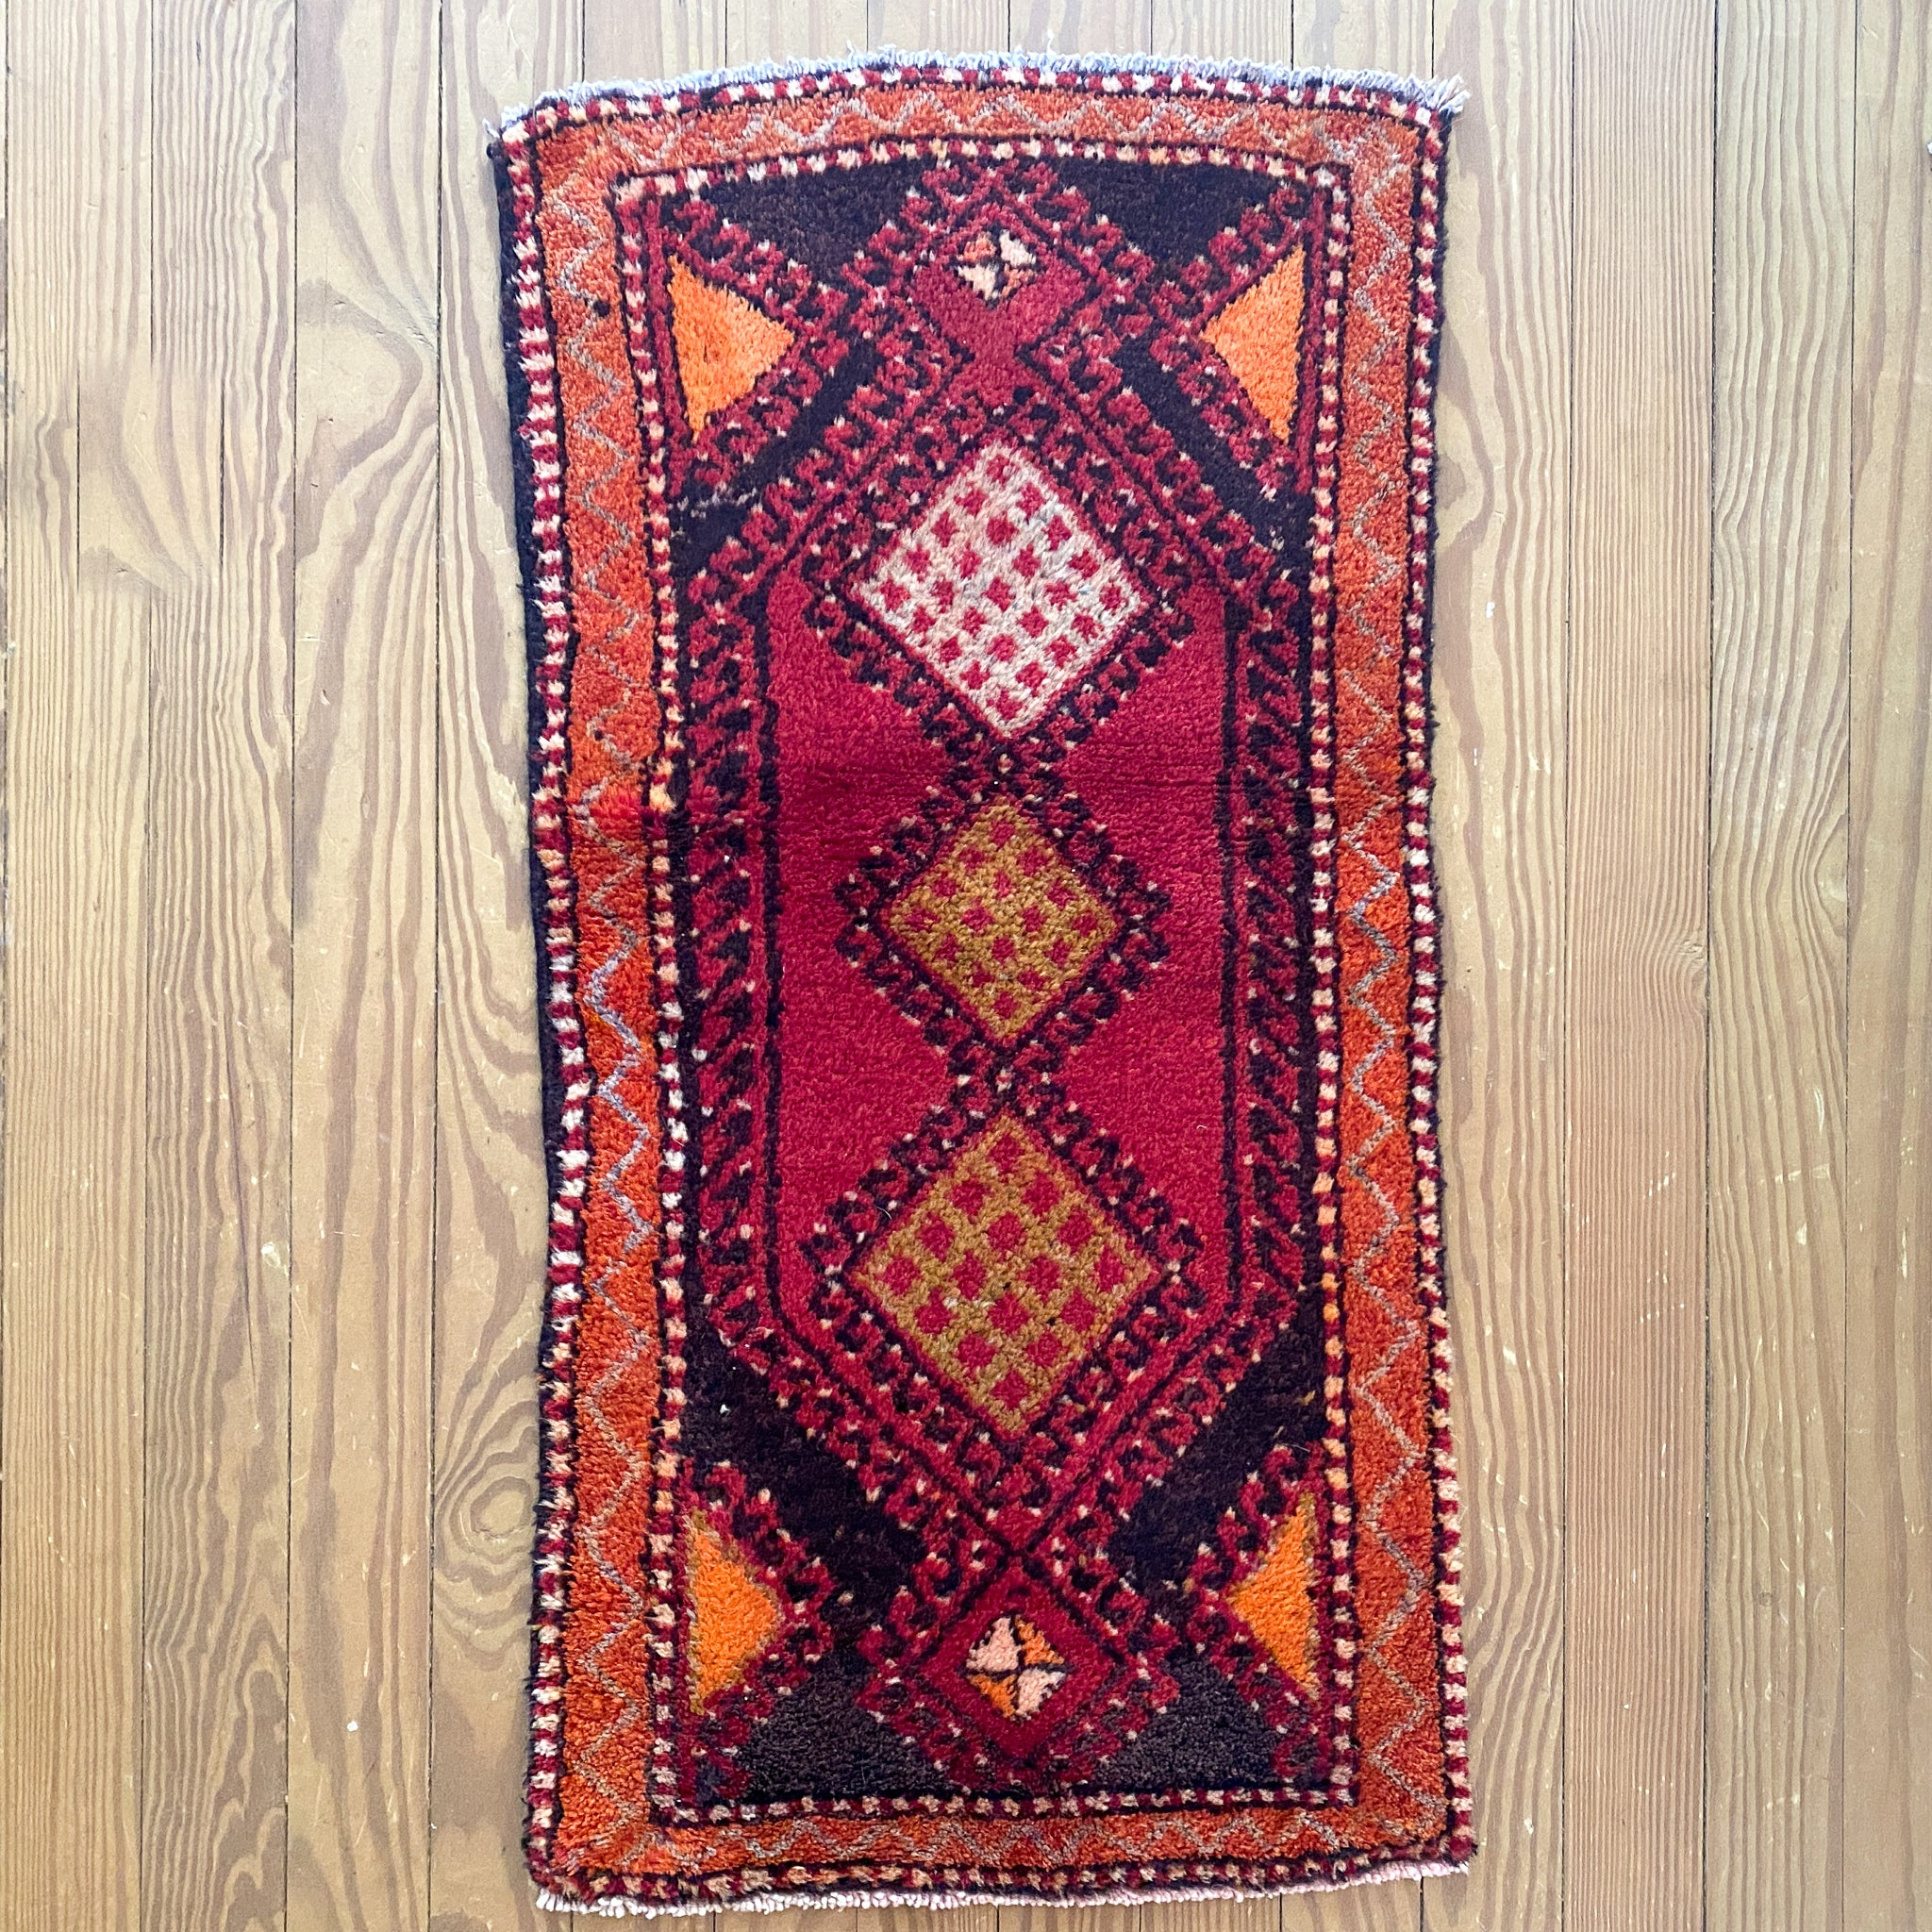 NT22 Handwoven Vintage Rug 1'9x3'4